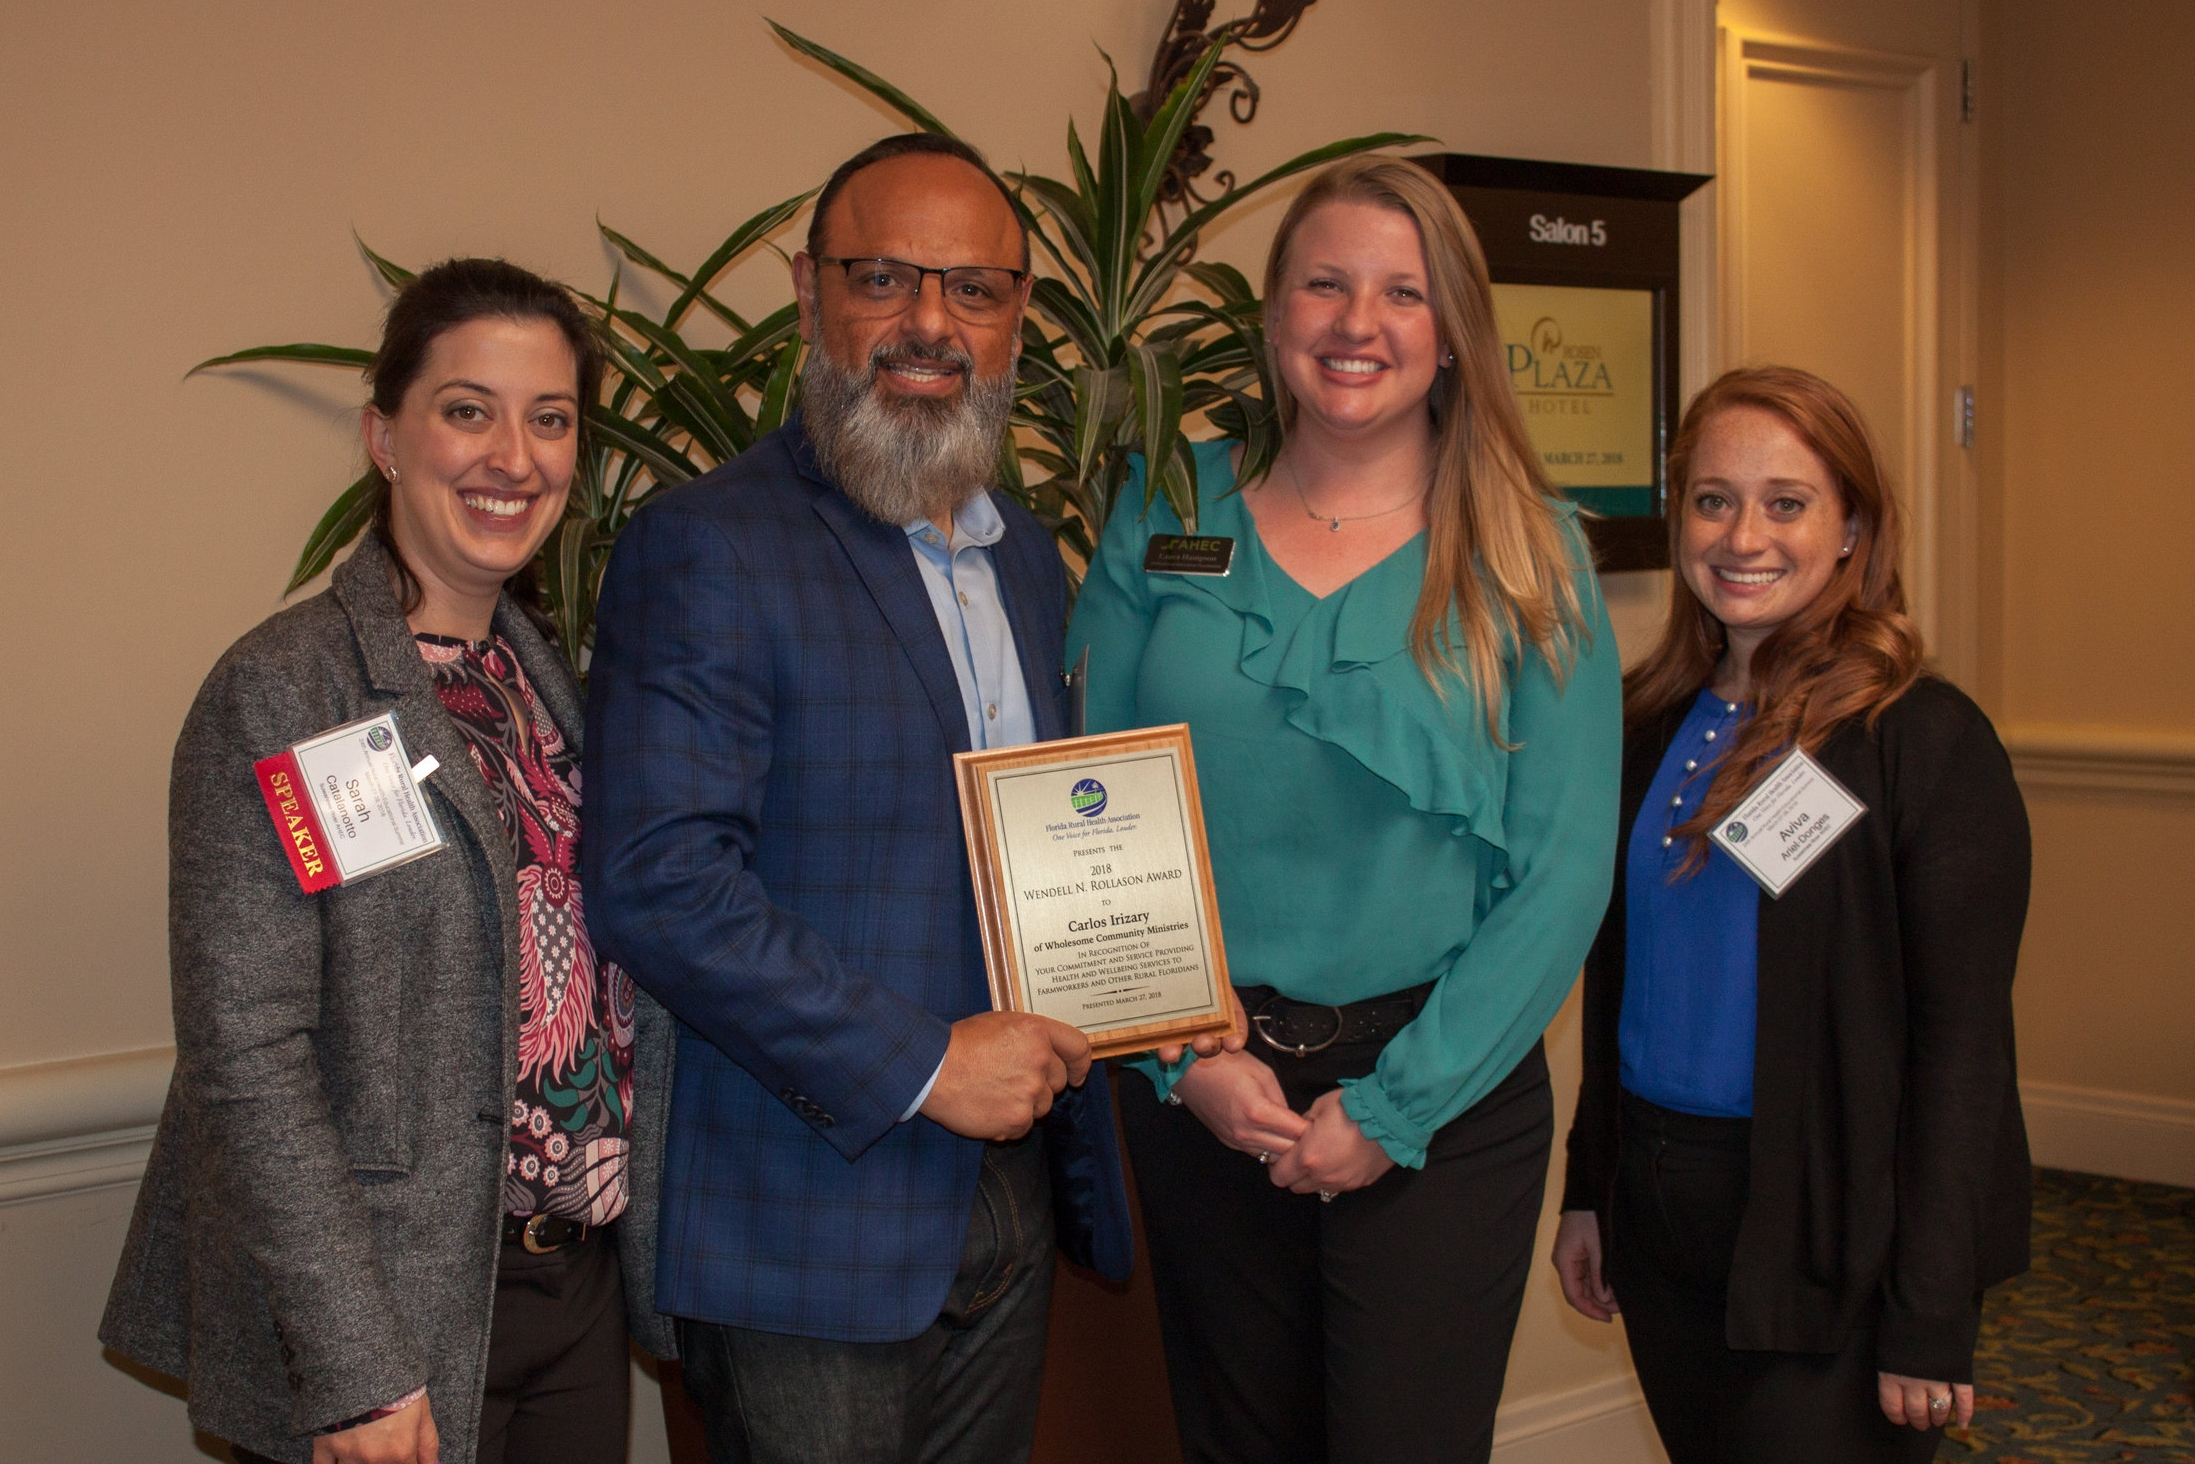 2018 Wendell Rollason Award recipient Pastor Carlos Irizarry of Wholesome Community Ministries poses with Suwannee River AHEC staff Sarah Catalanotto, Laura Hampson and Aviva Ariel-Donges.